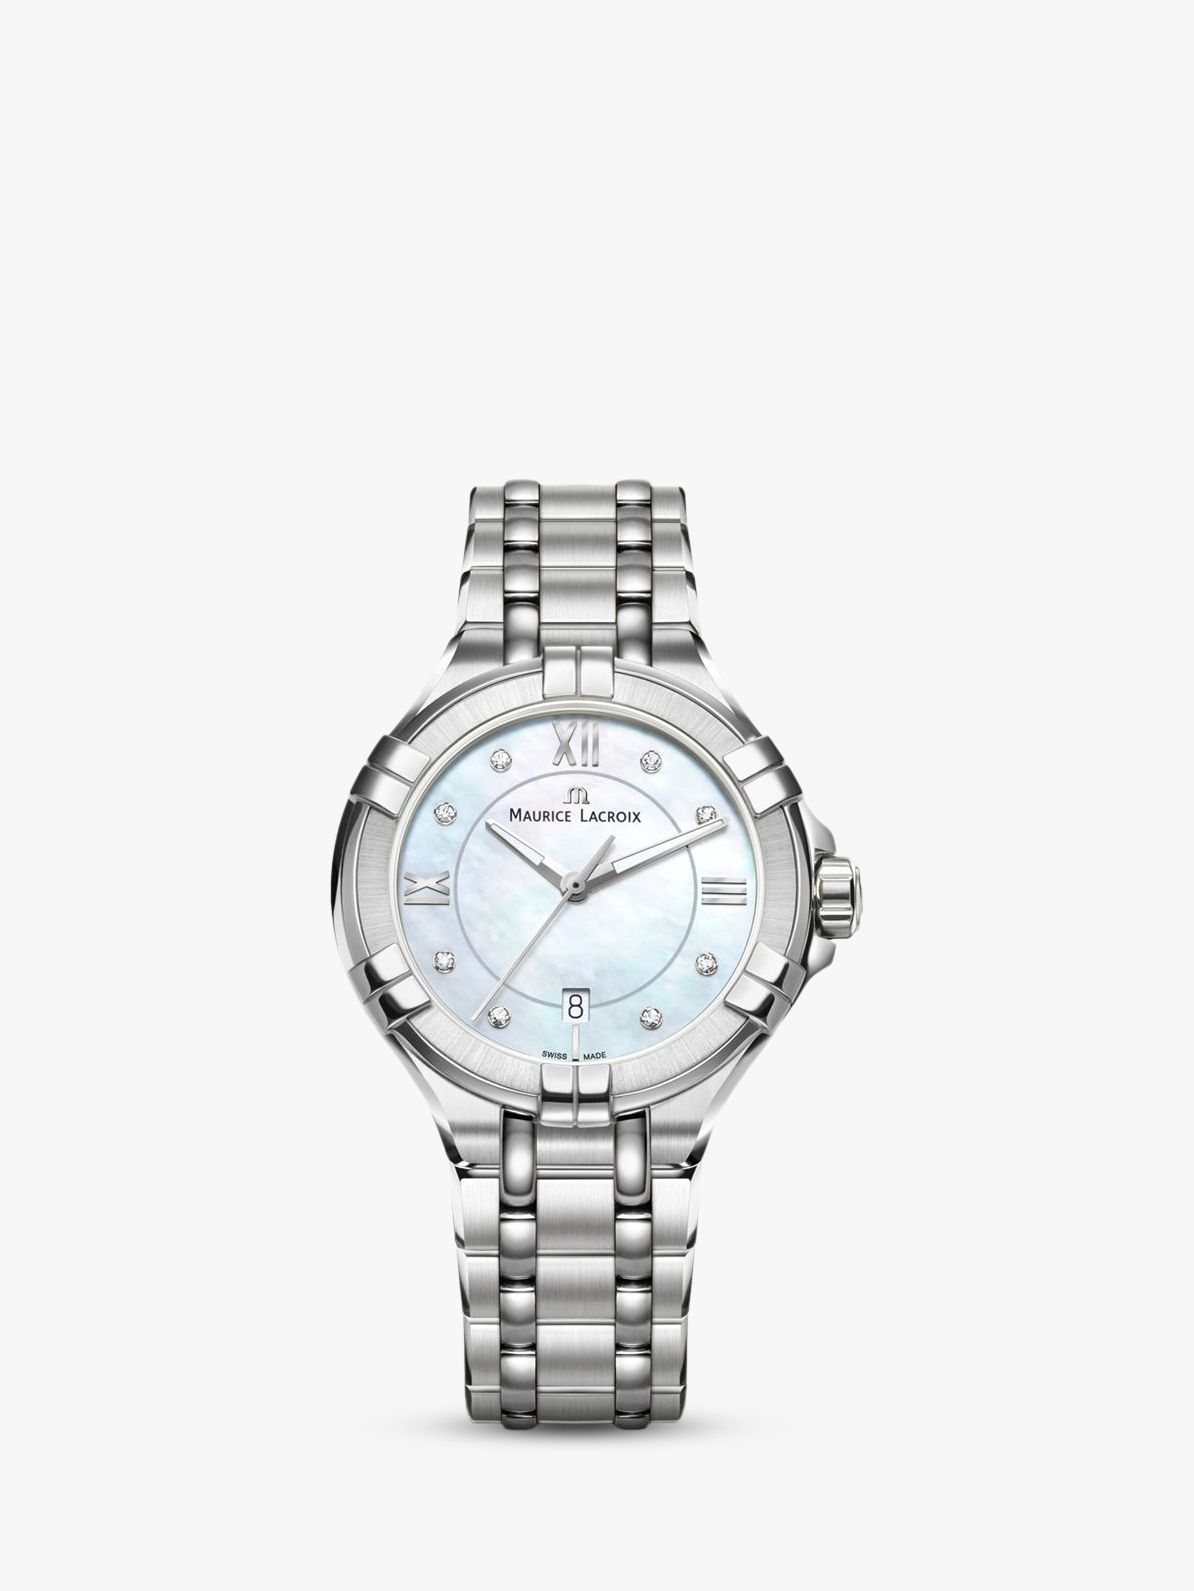 Maurice Lacroix Maurice Lacroix AI1004-SS002-170-1 Women's Aikon Diamond Date Bracelet Strap Watch, Silver/Mother of Pearl